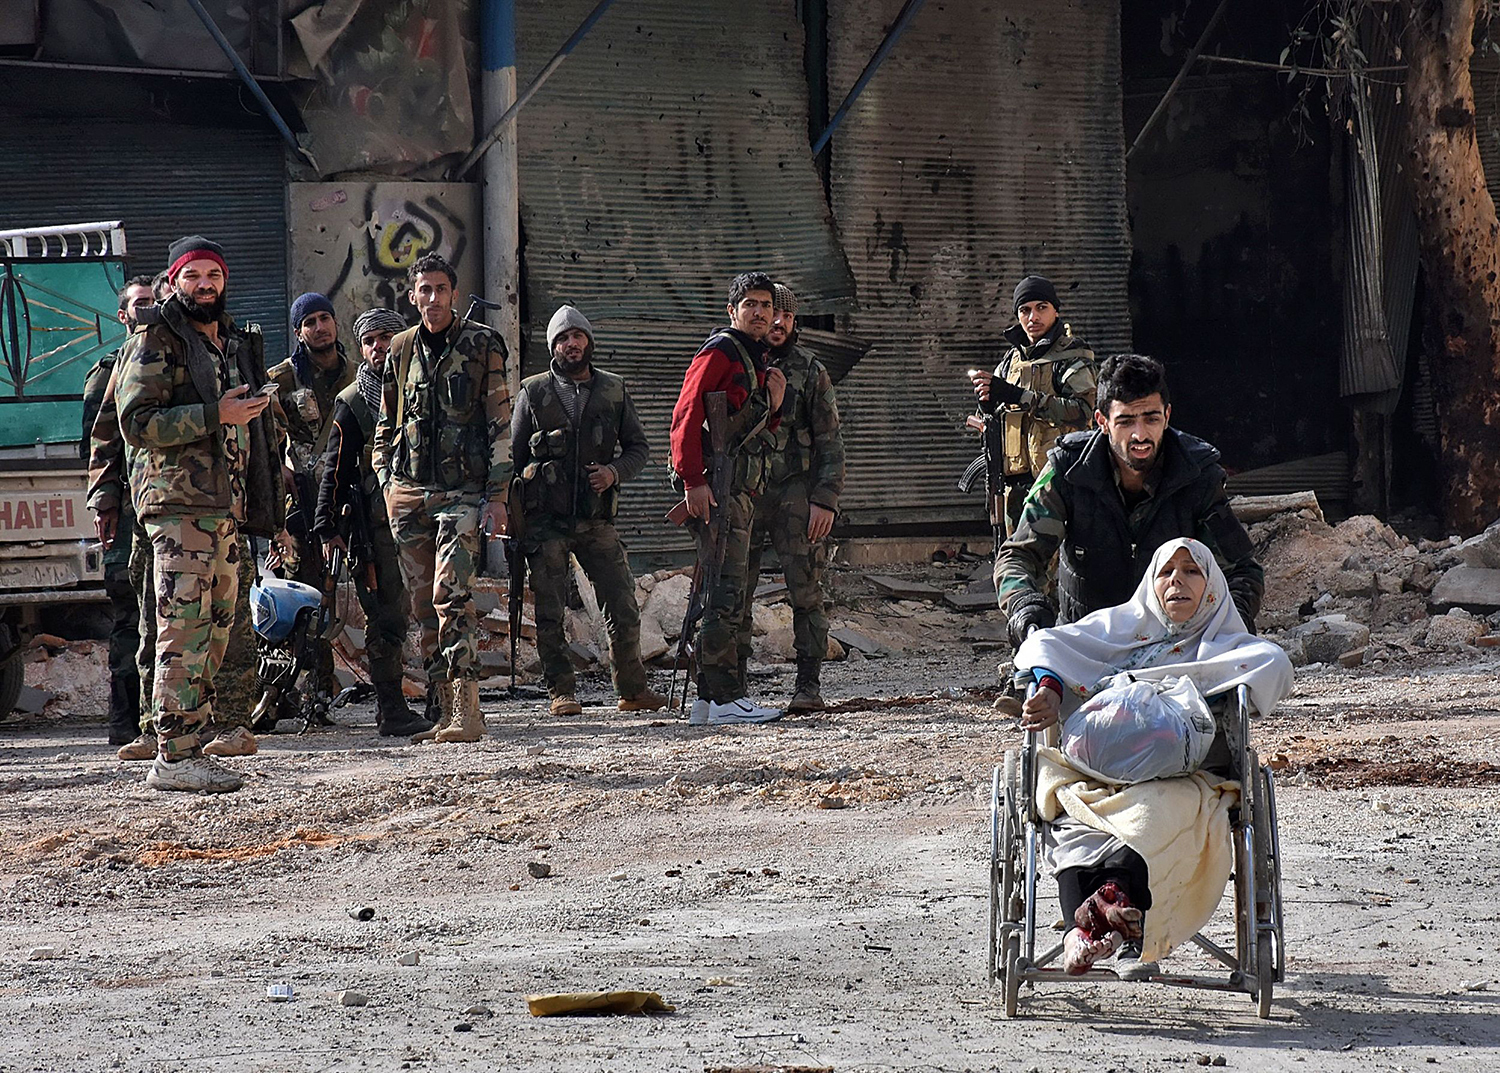 TOPSHOT - A member of the government forces pushes an injured woman in a wheelchair as civilians are evacuated from Aleppo's al-Shaar neighbourhood after government forces took control of the area in the eastern part of the northern Syrian city on December 7, 2016. Rebels in Aleppo called for a five-day truce and the evacuation of civilians after losing more than three quarters of their territory including the Old City to a Syrian army offensive. / AFP PHOTO / GEORGE OURFALIAN / TT / kod 444